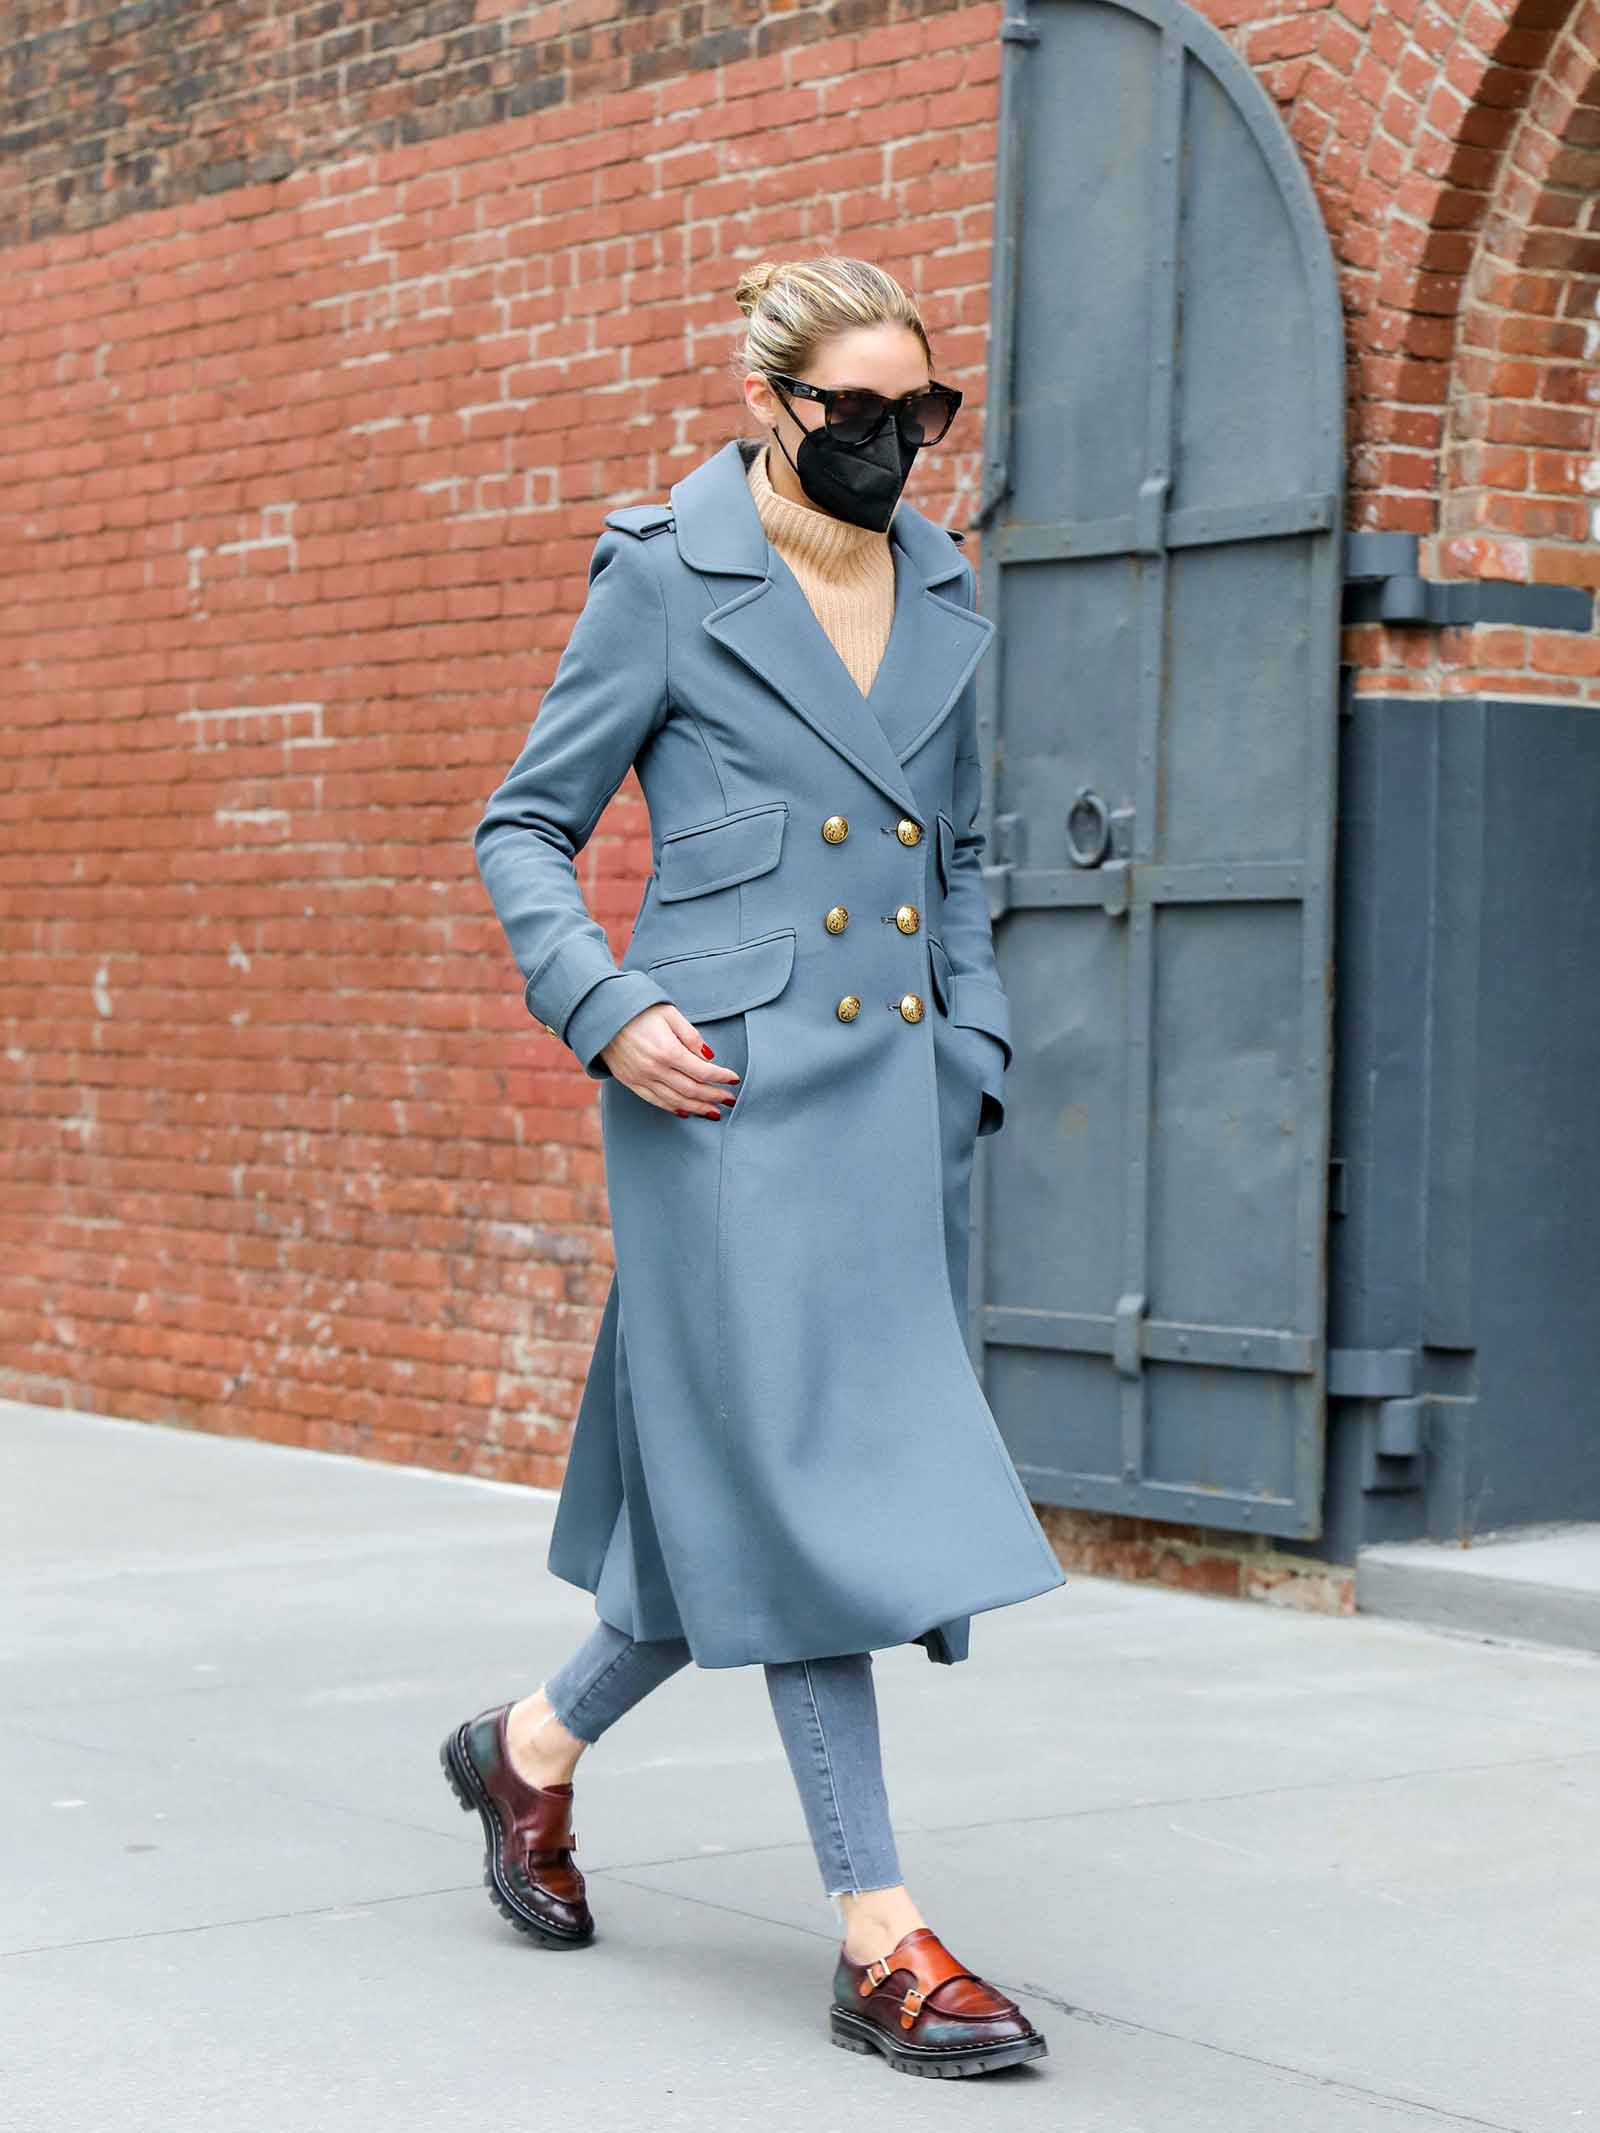 Olivia's Palermo's style is timeless!